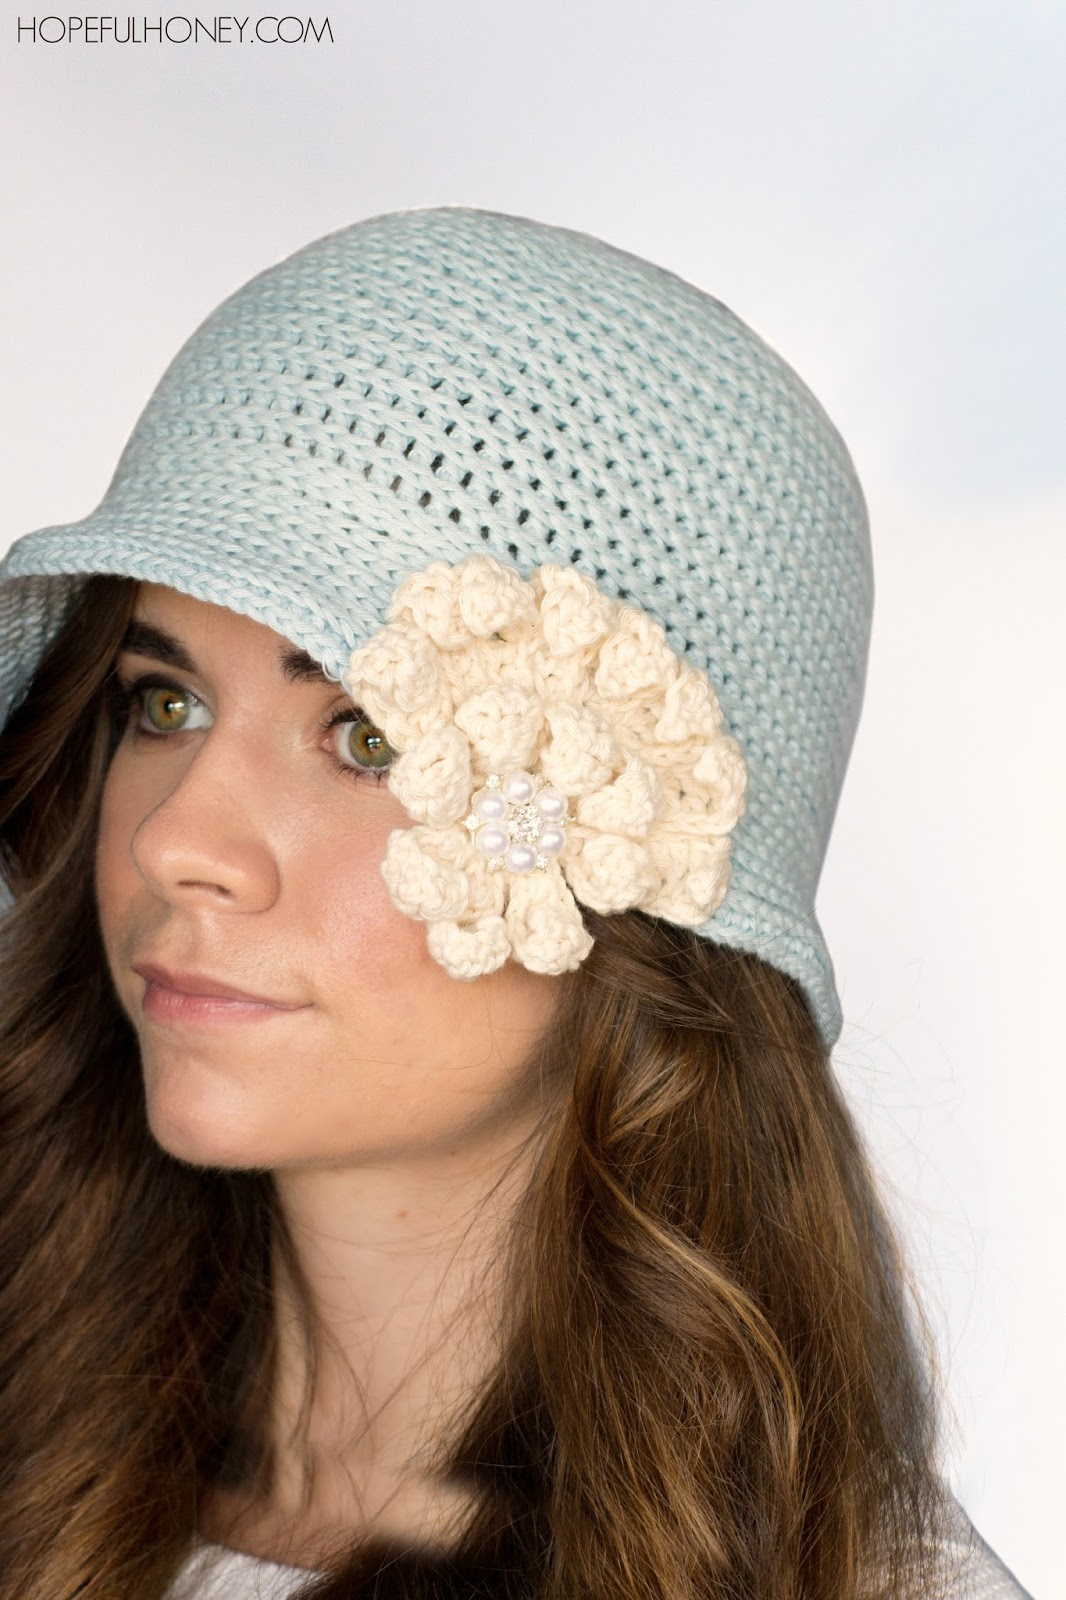 Crochet Hat Pattern Cloche : Hopeful Honey Craft, Crochet, Create: 1920s Snowflake ...